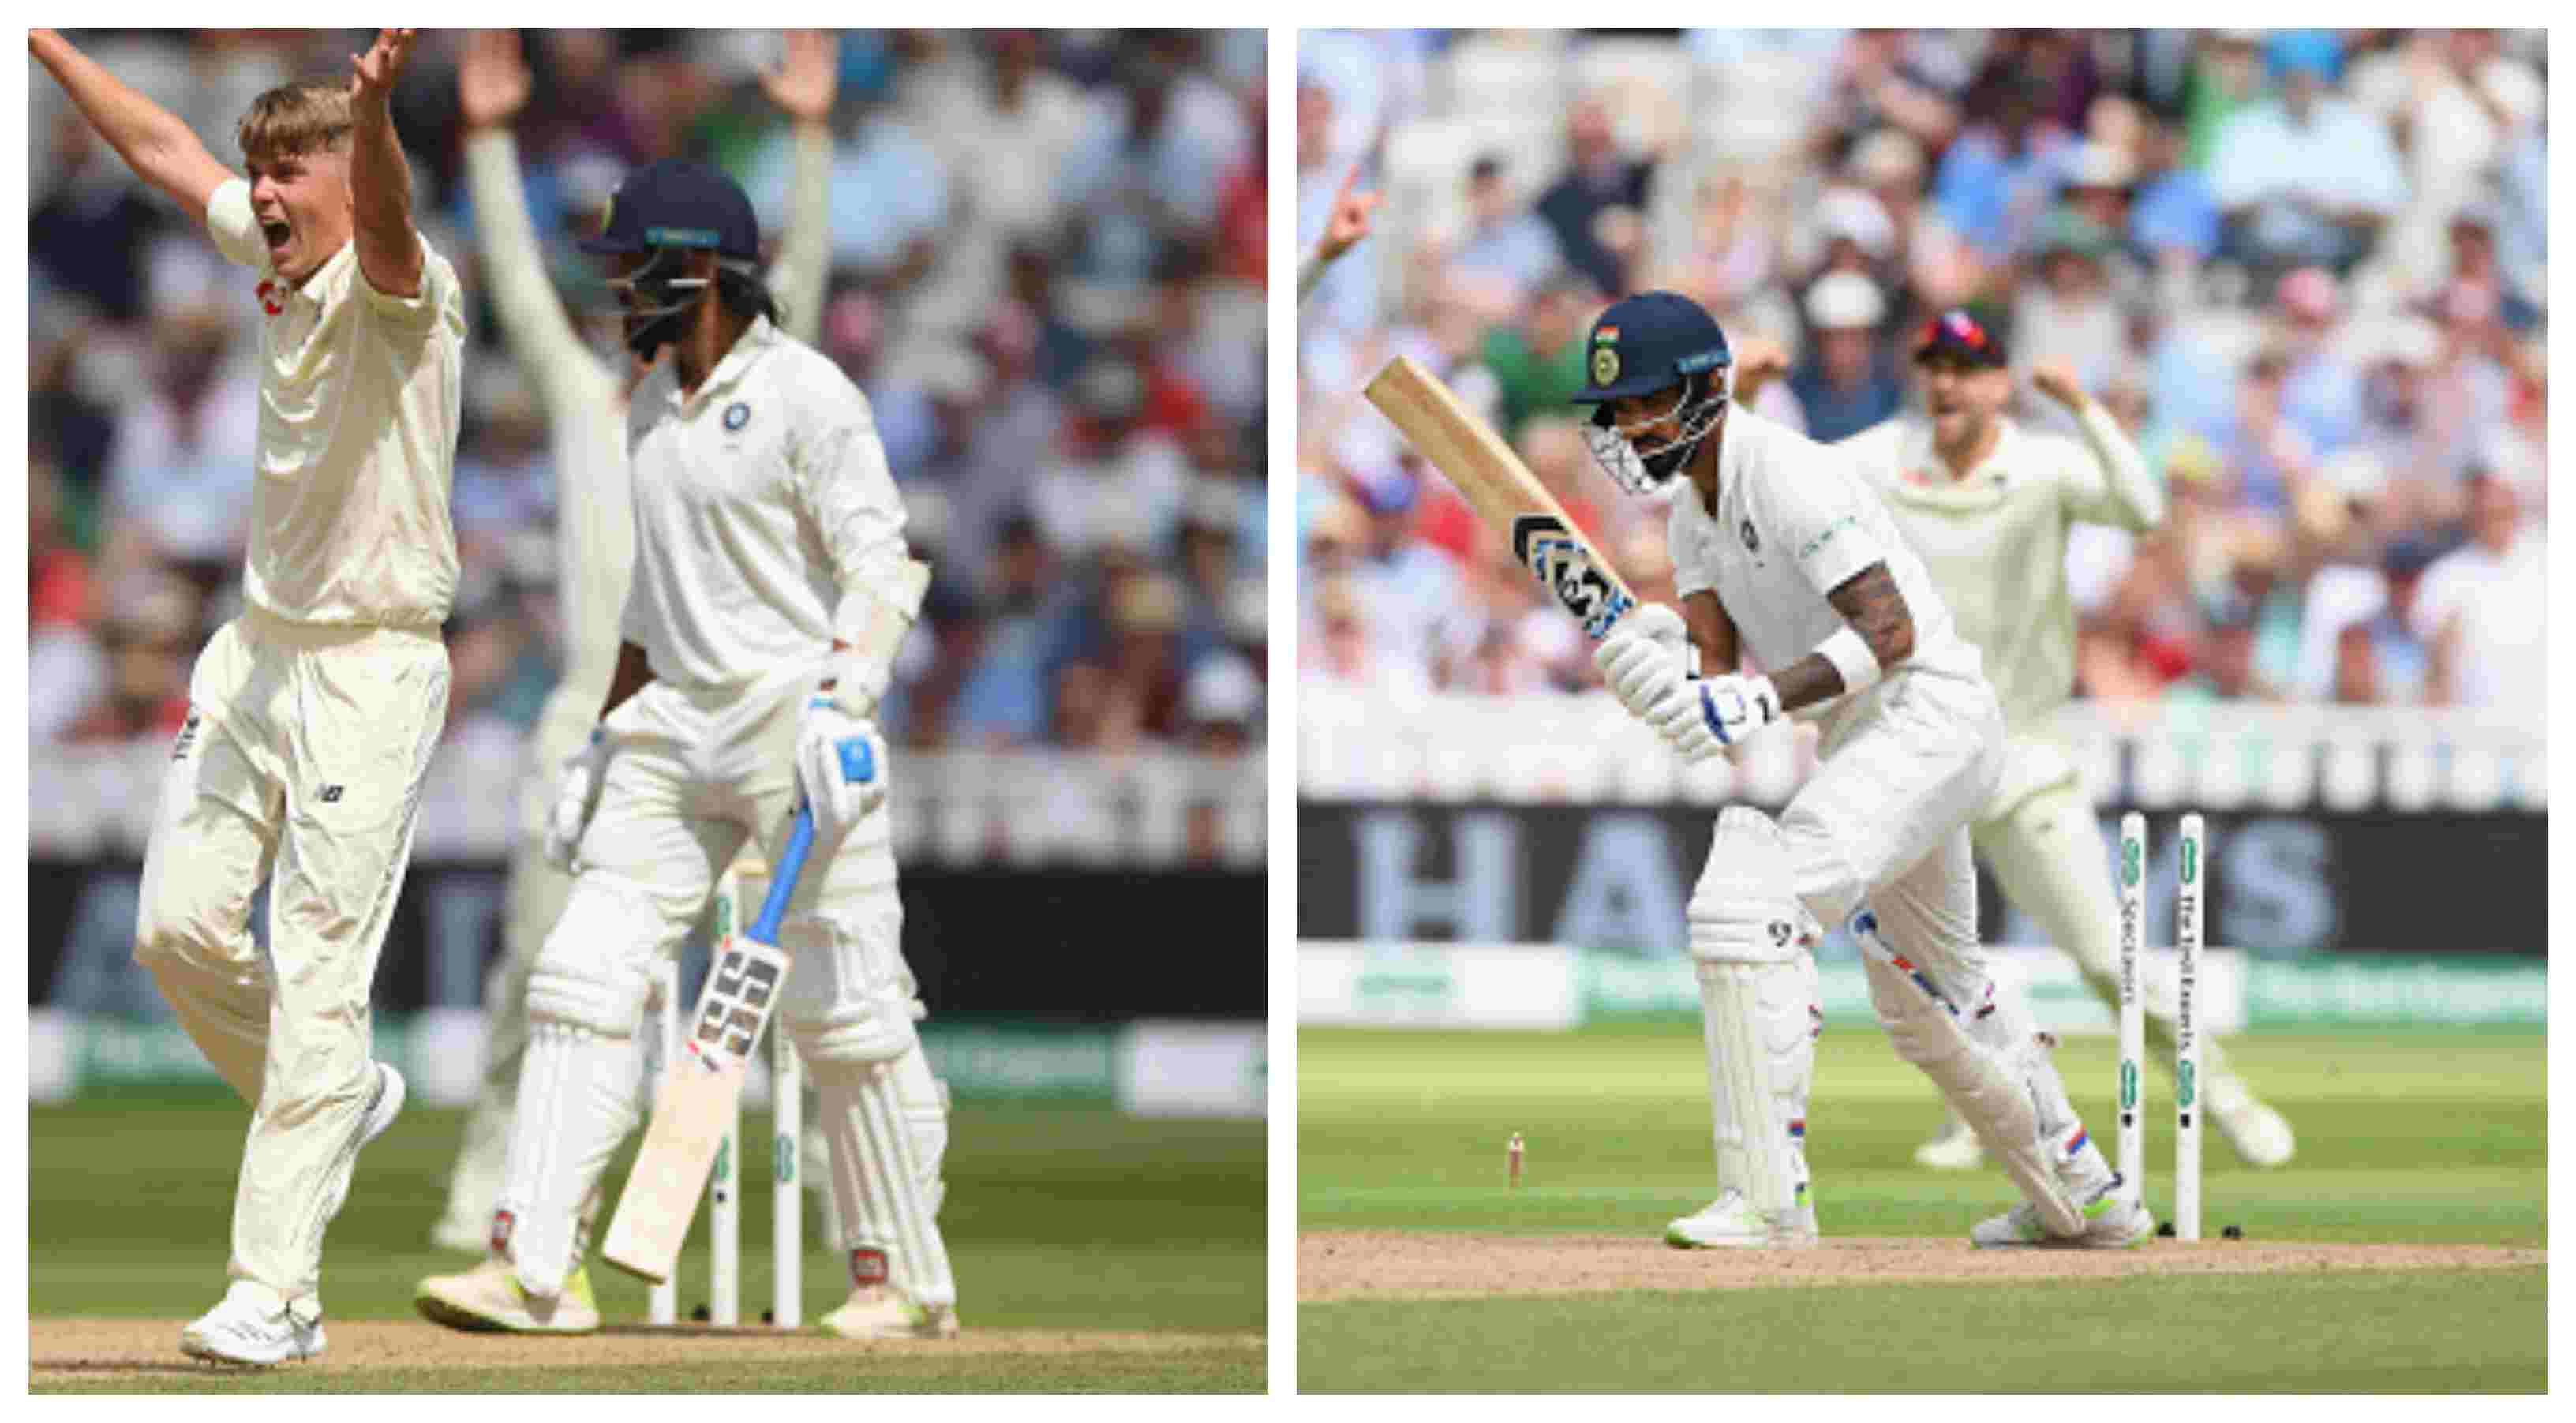 Indian batsmen are finding it difficult to combat the swing of England bowlers in the ongoing Test series